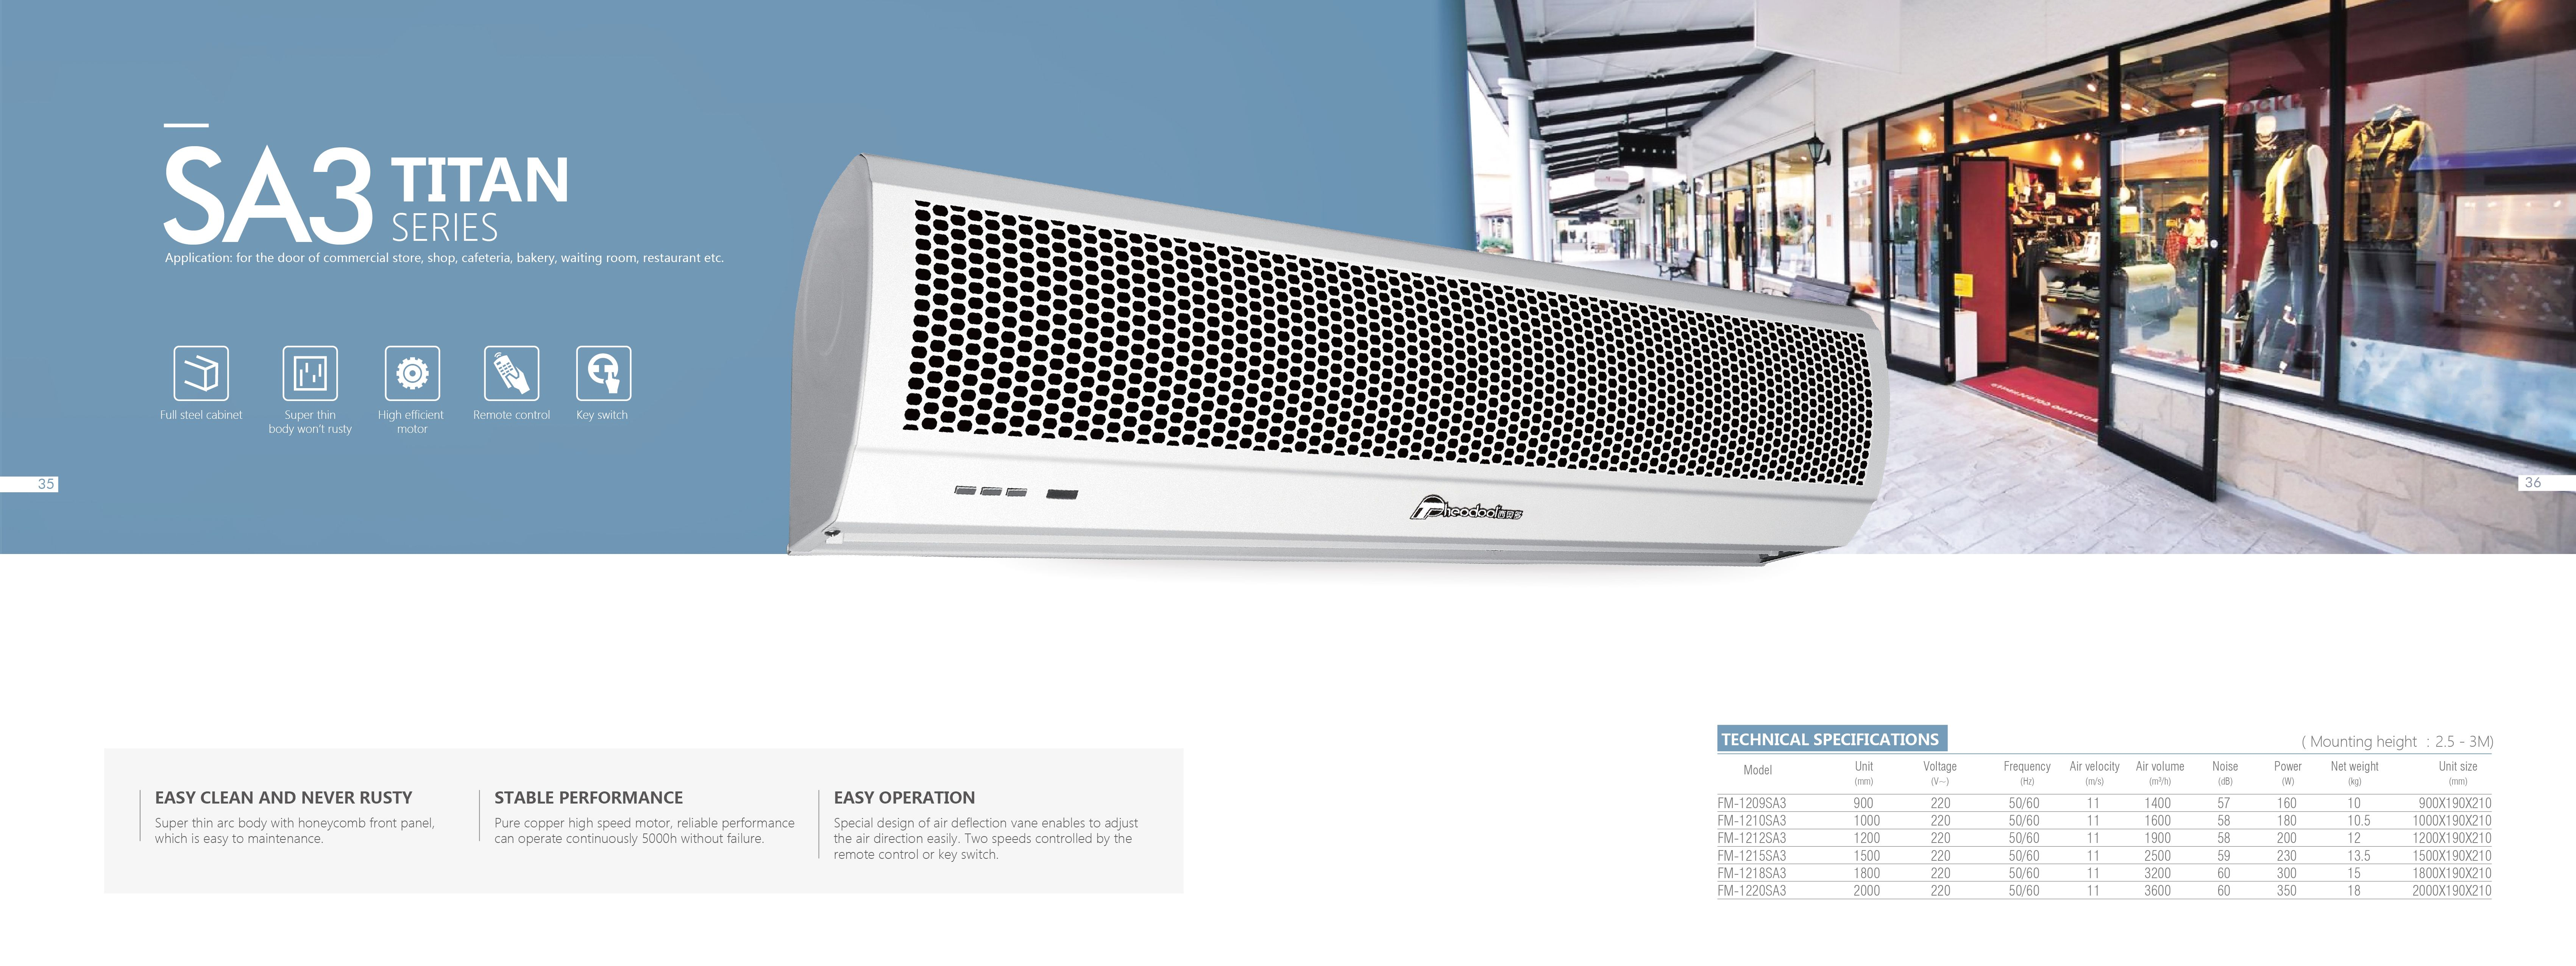 Wall Mounted Compact Design Titan 3 Residential Air Curtain With